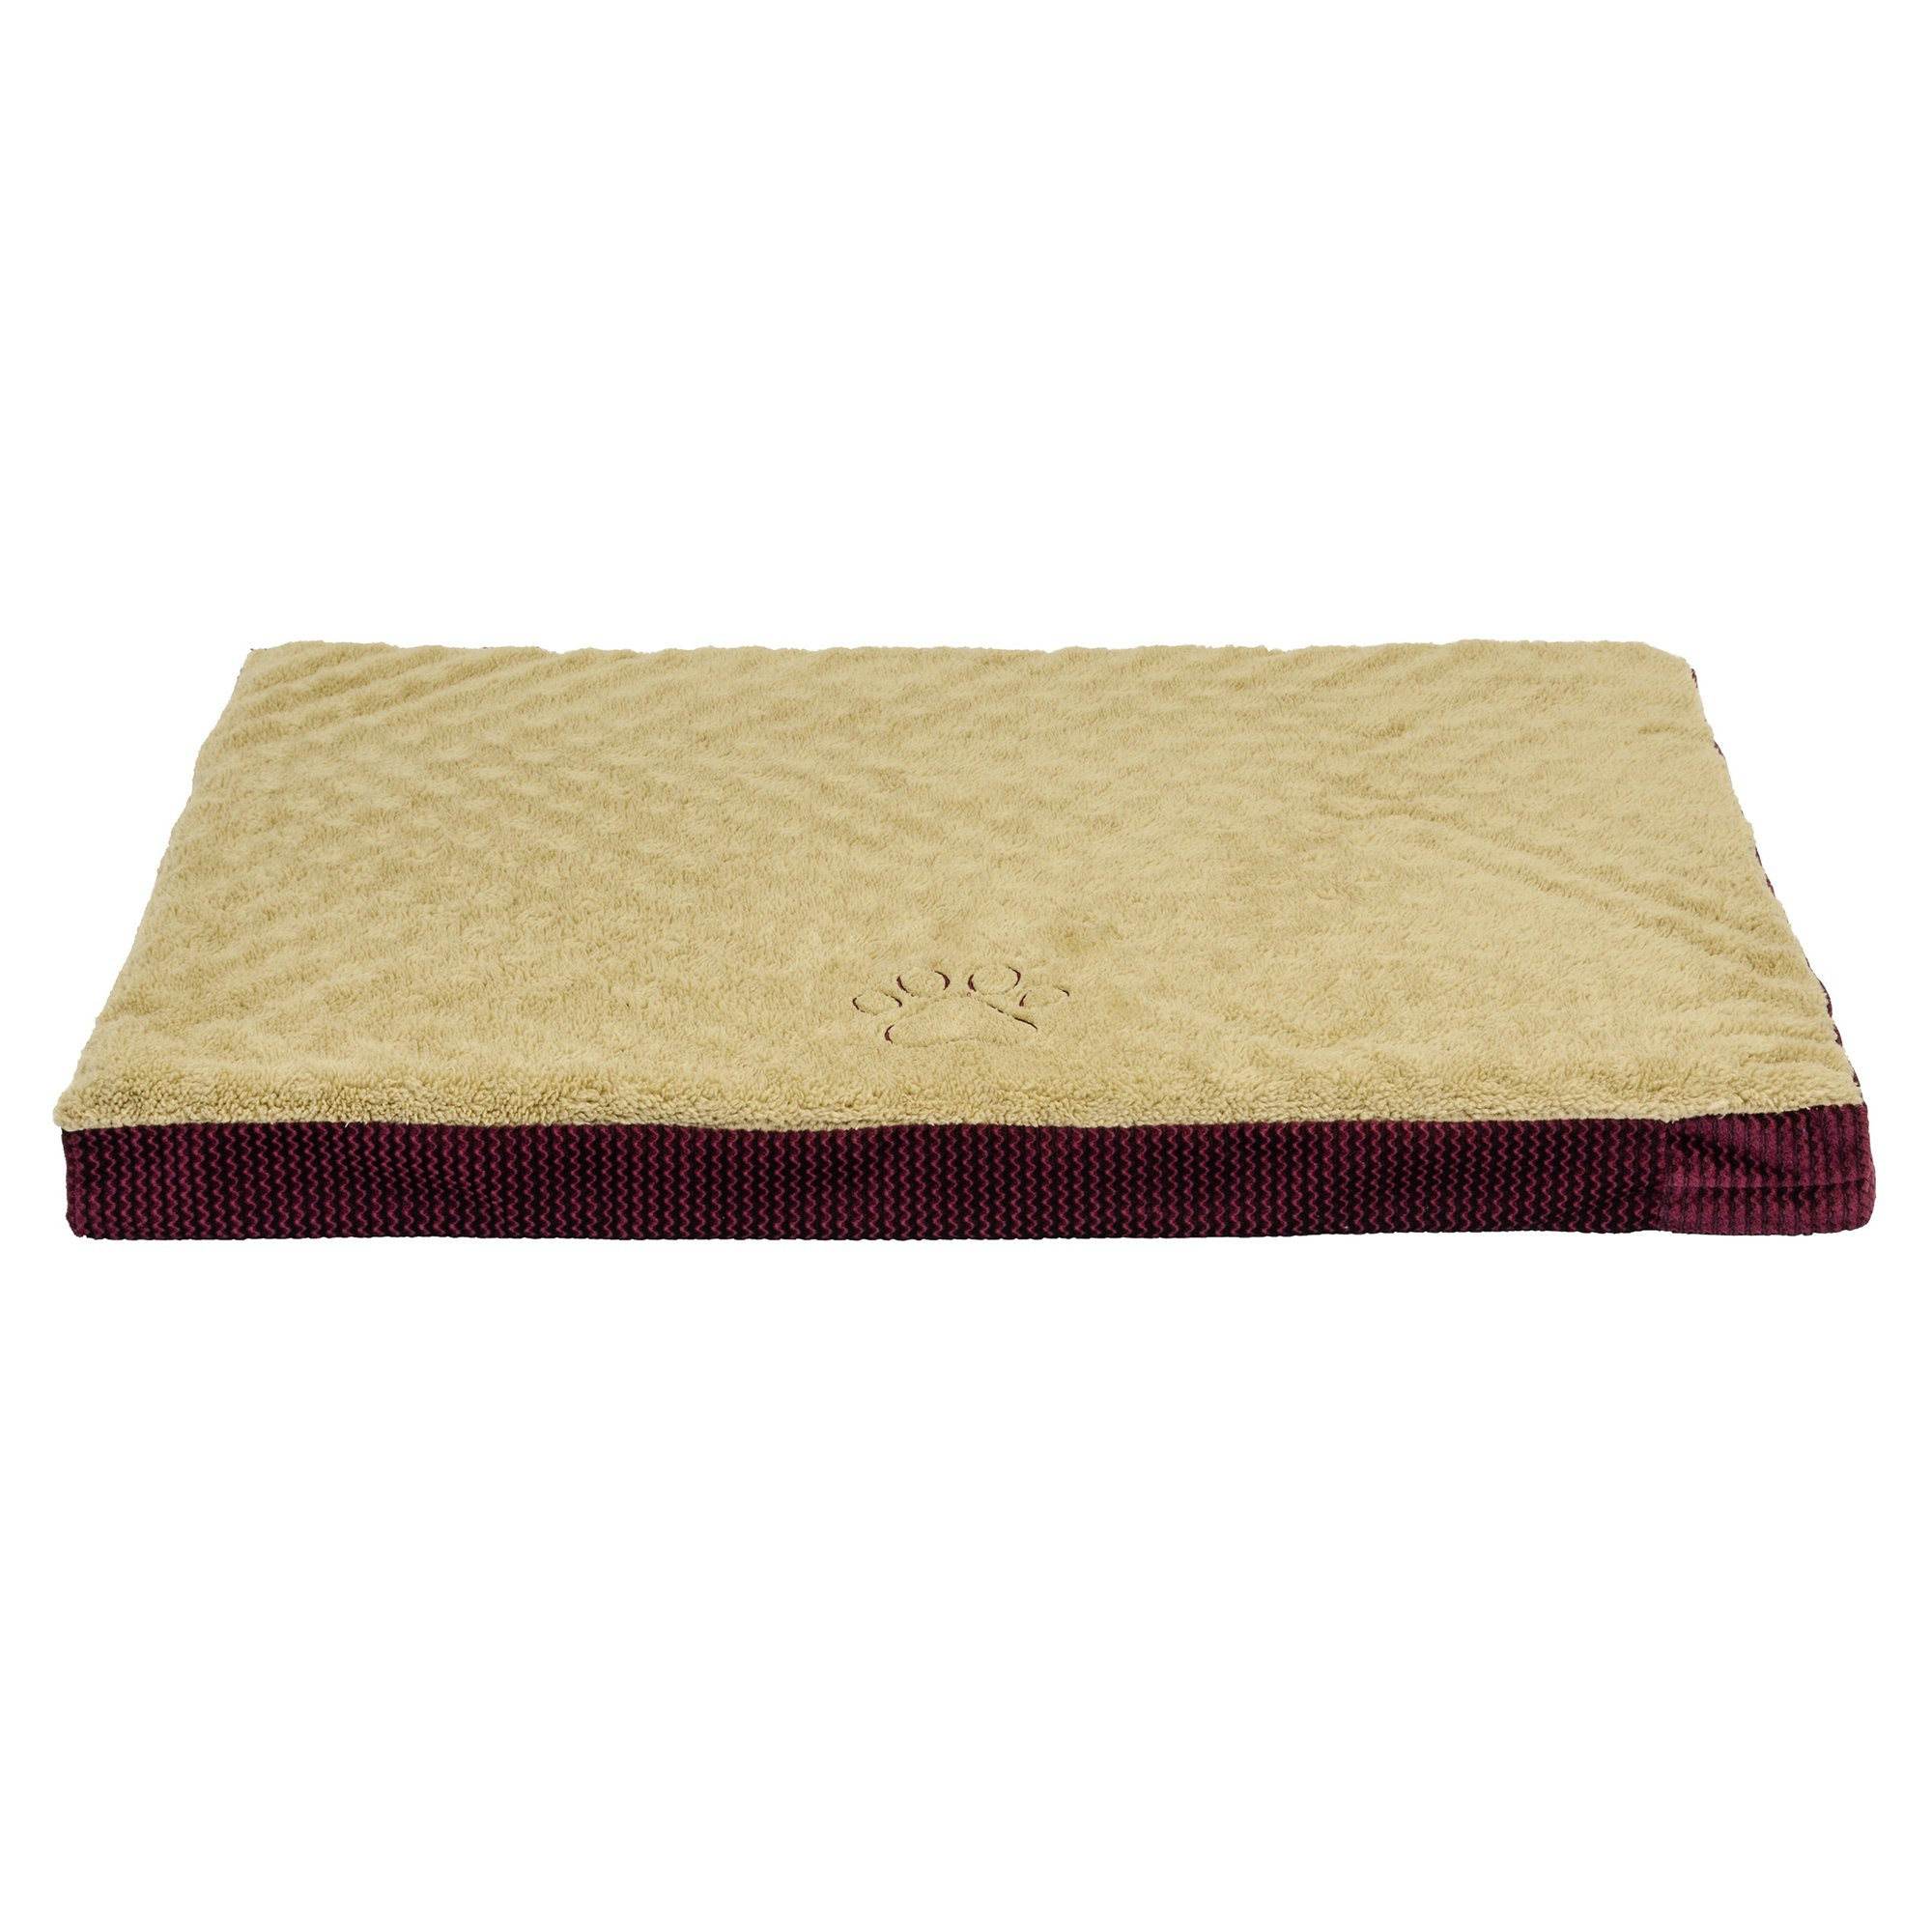 Dallas Manufacturing Brown Orthopedic Dog Bed